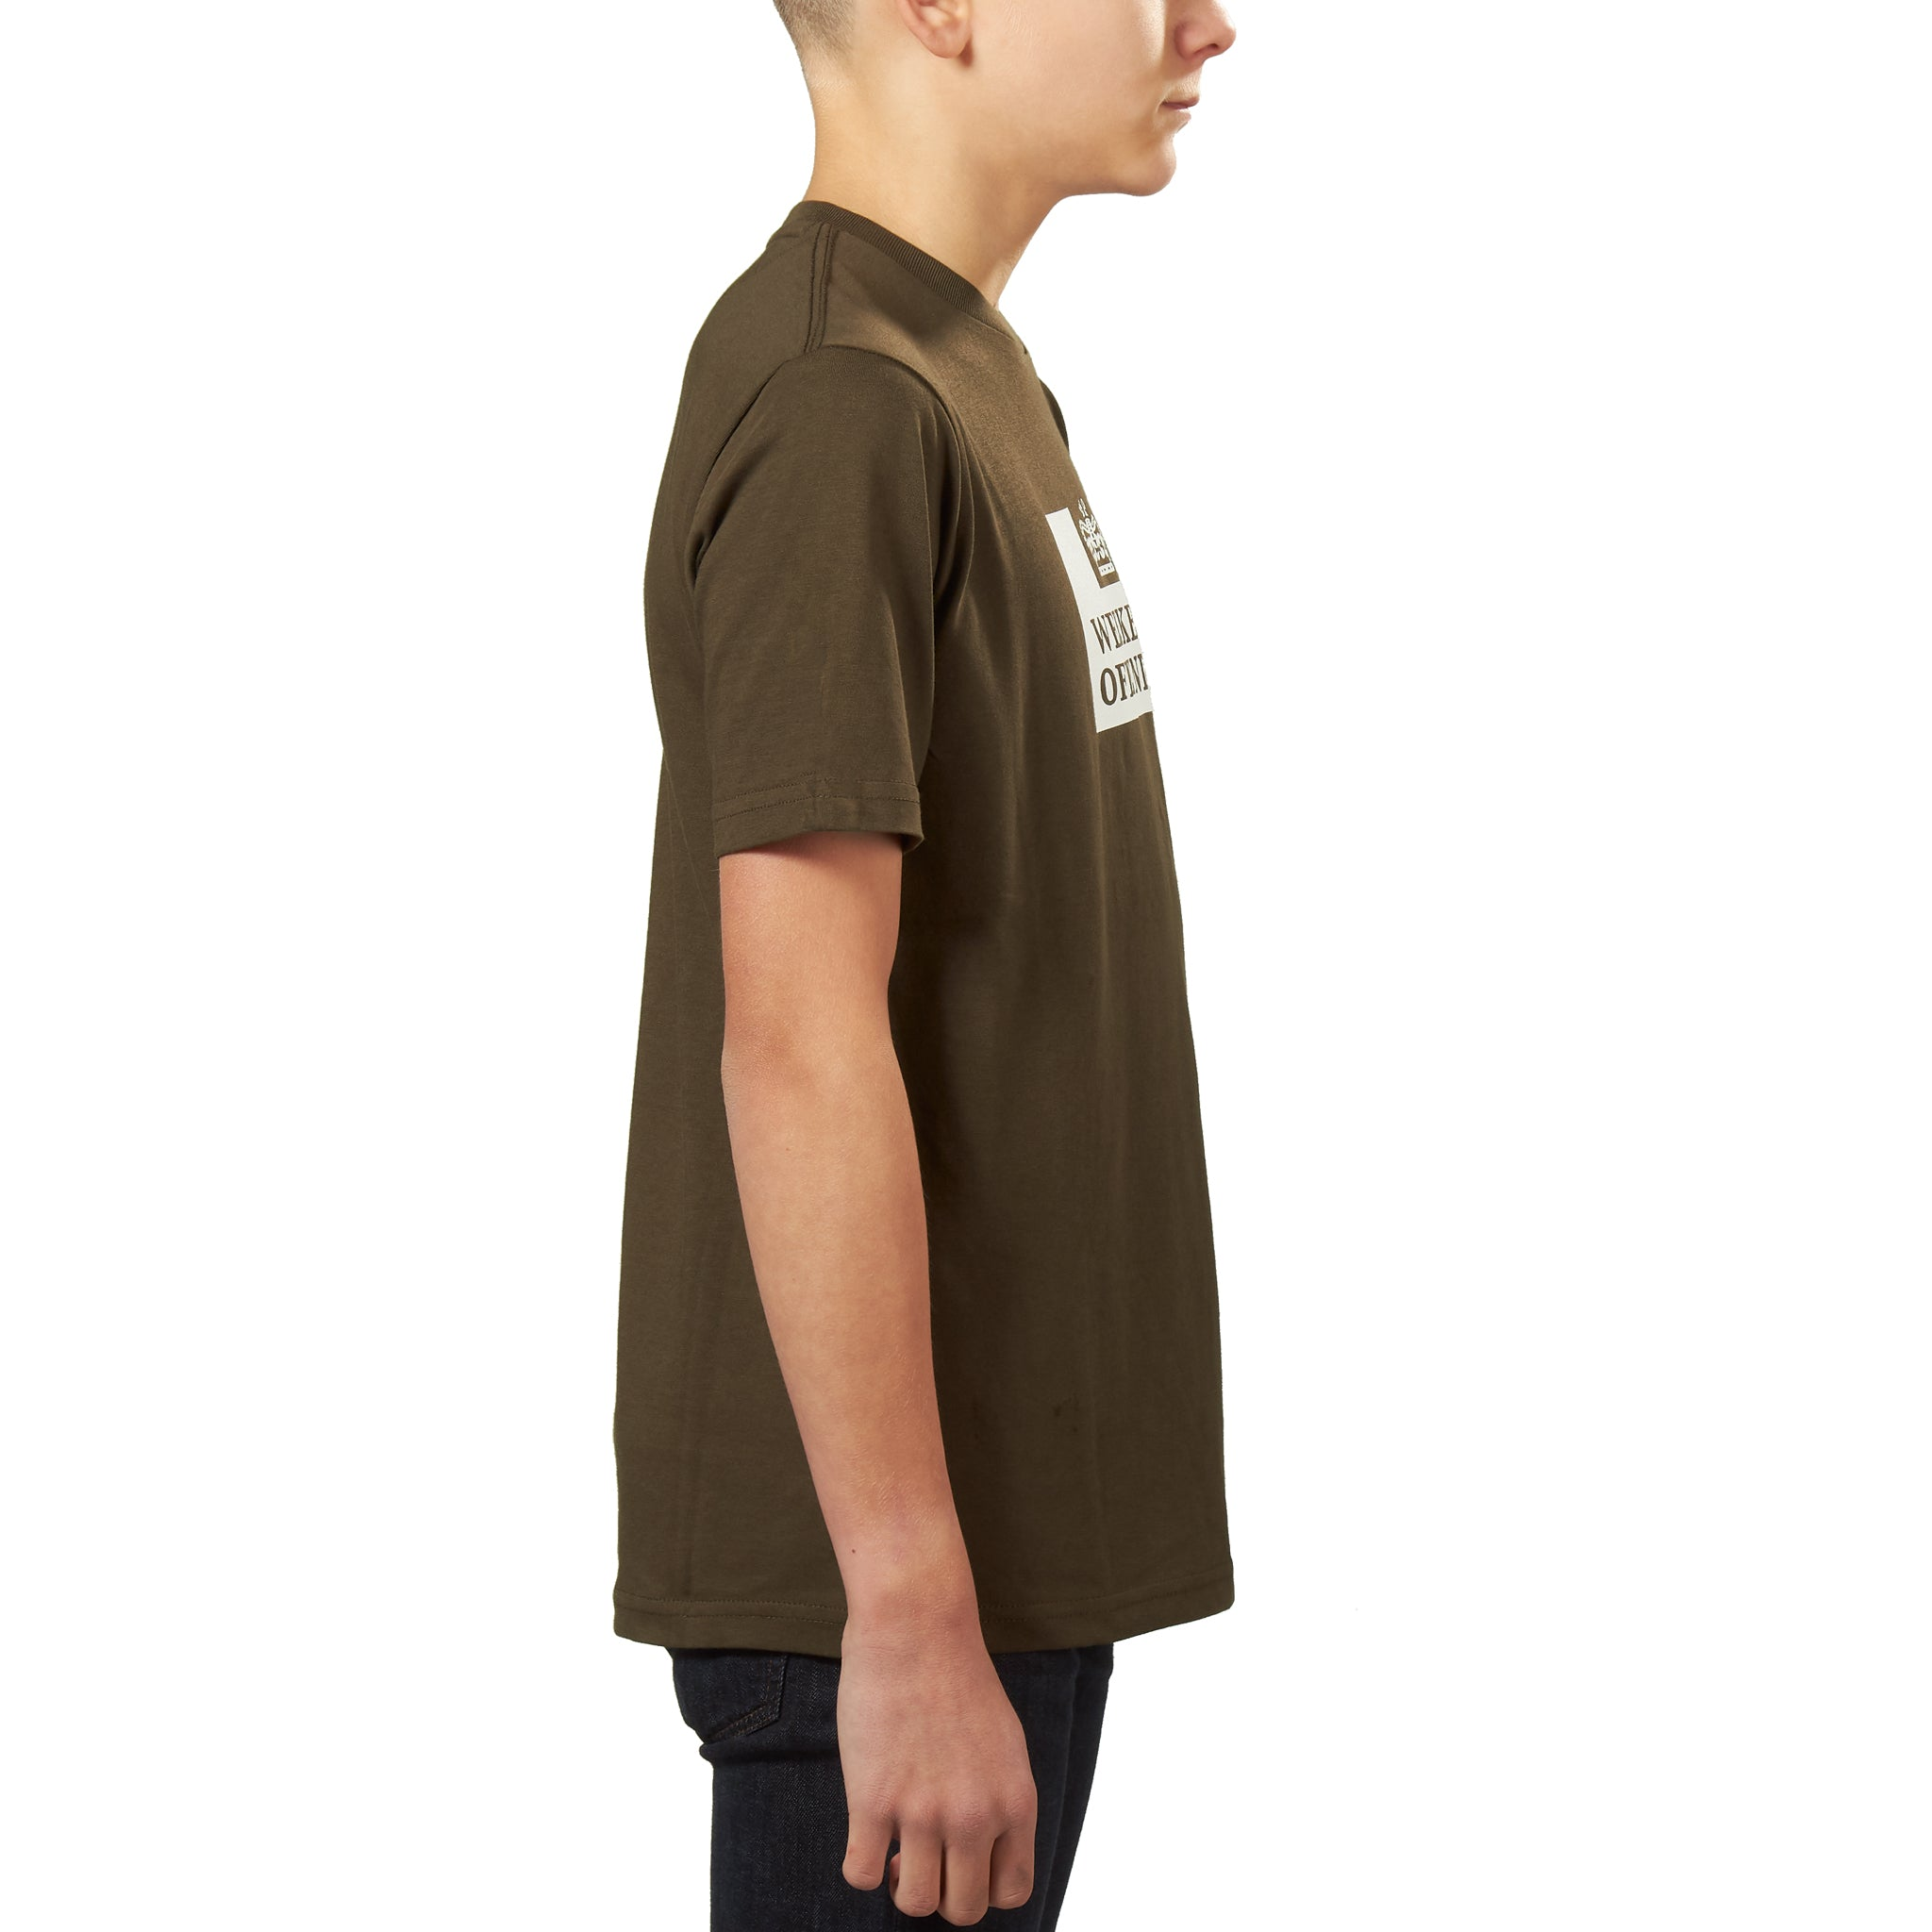 Kids SS18 Prison Uniform